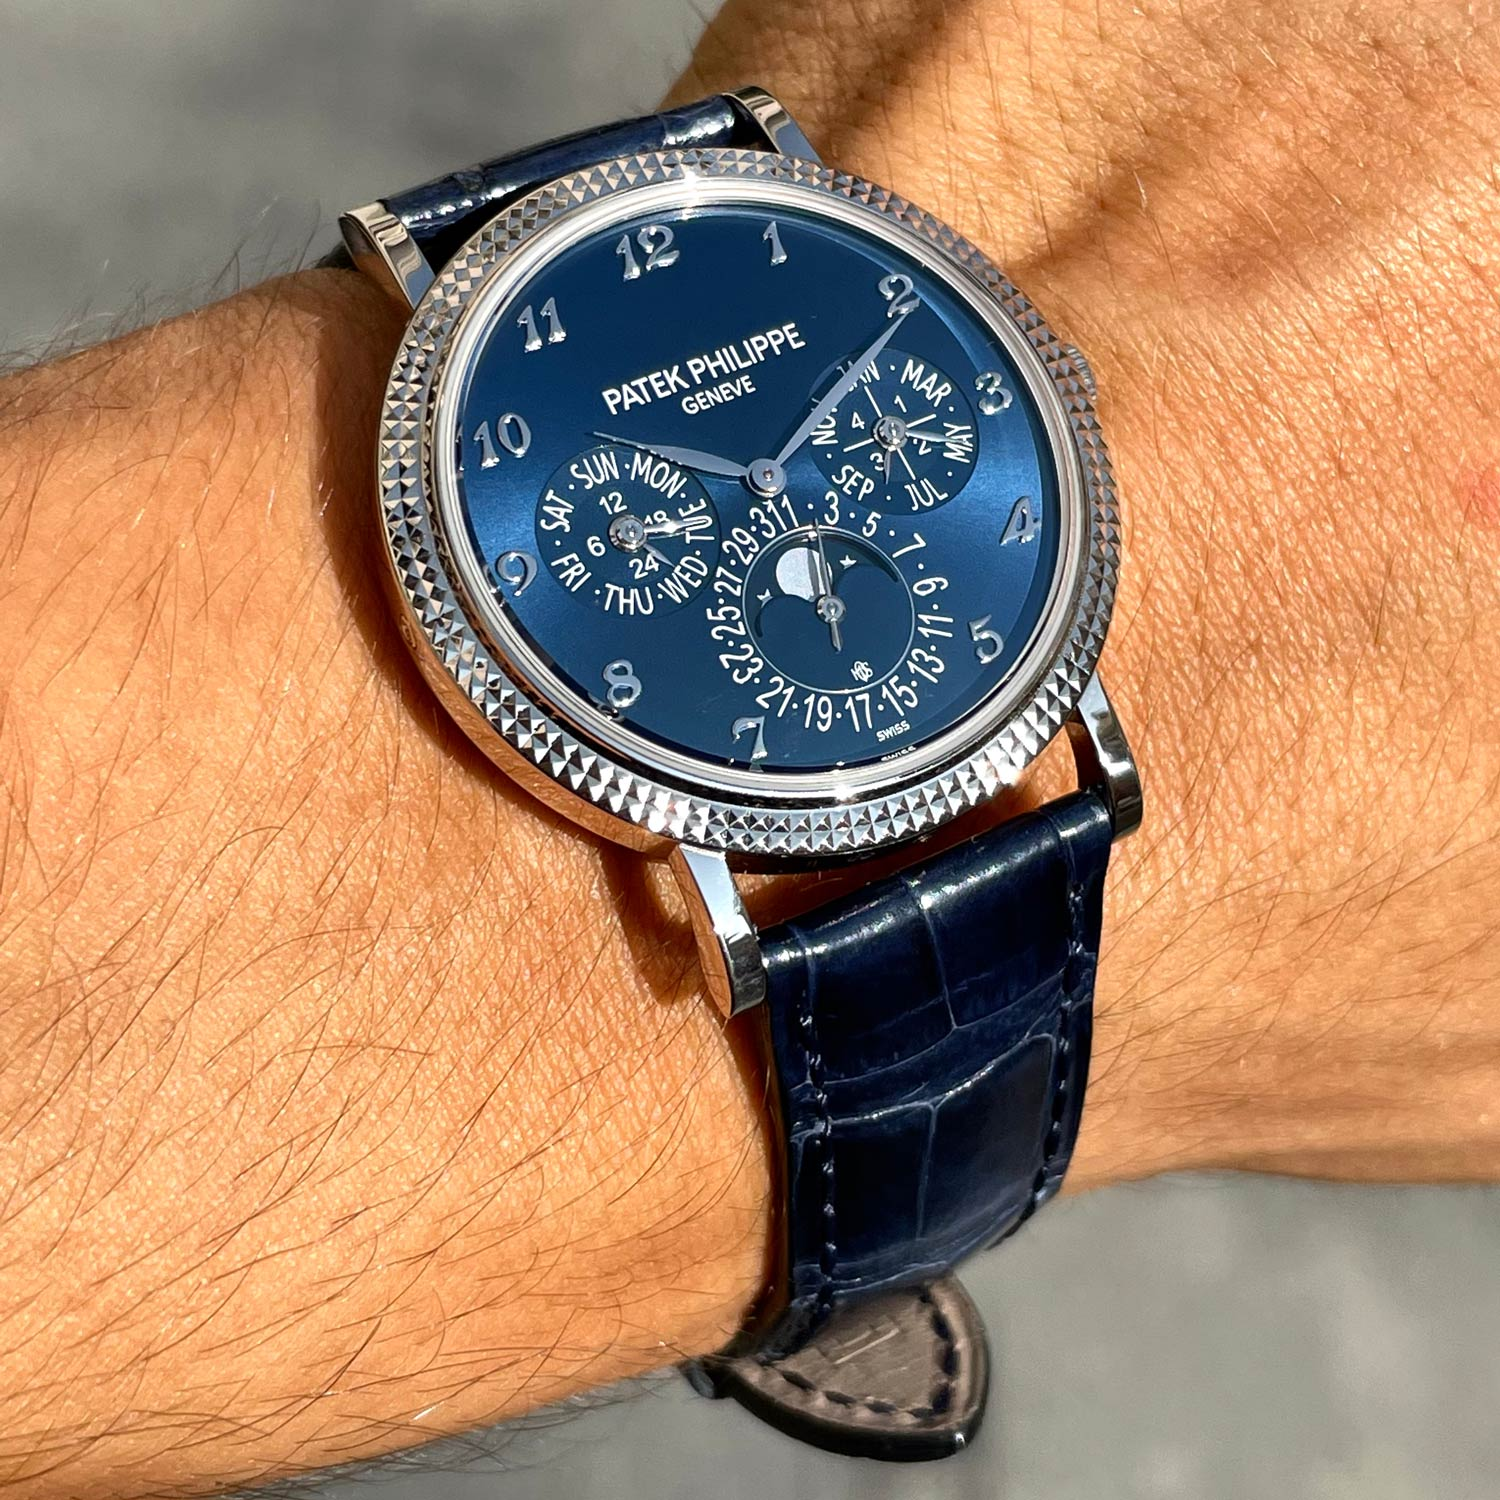 Lot 123 Patek Philippe: Extraordinary and Unique Perpetual Calendar Wristwatch in White Gold, Reference 5139g, Moon Phases, Original Certificate. Special Order for Michael Ovitz.